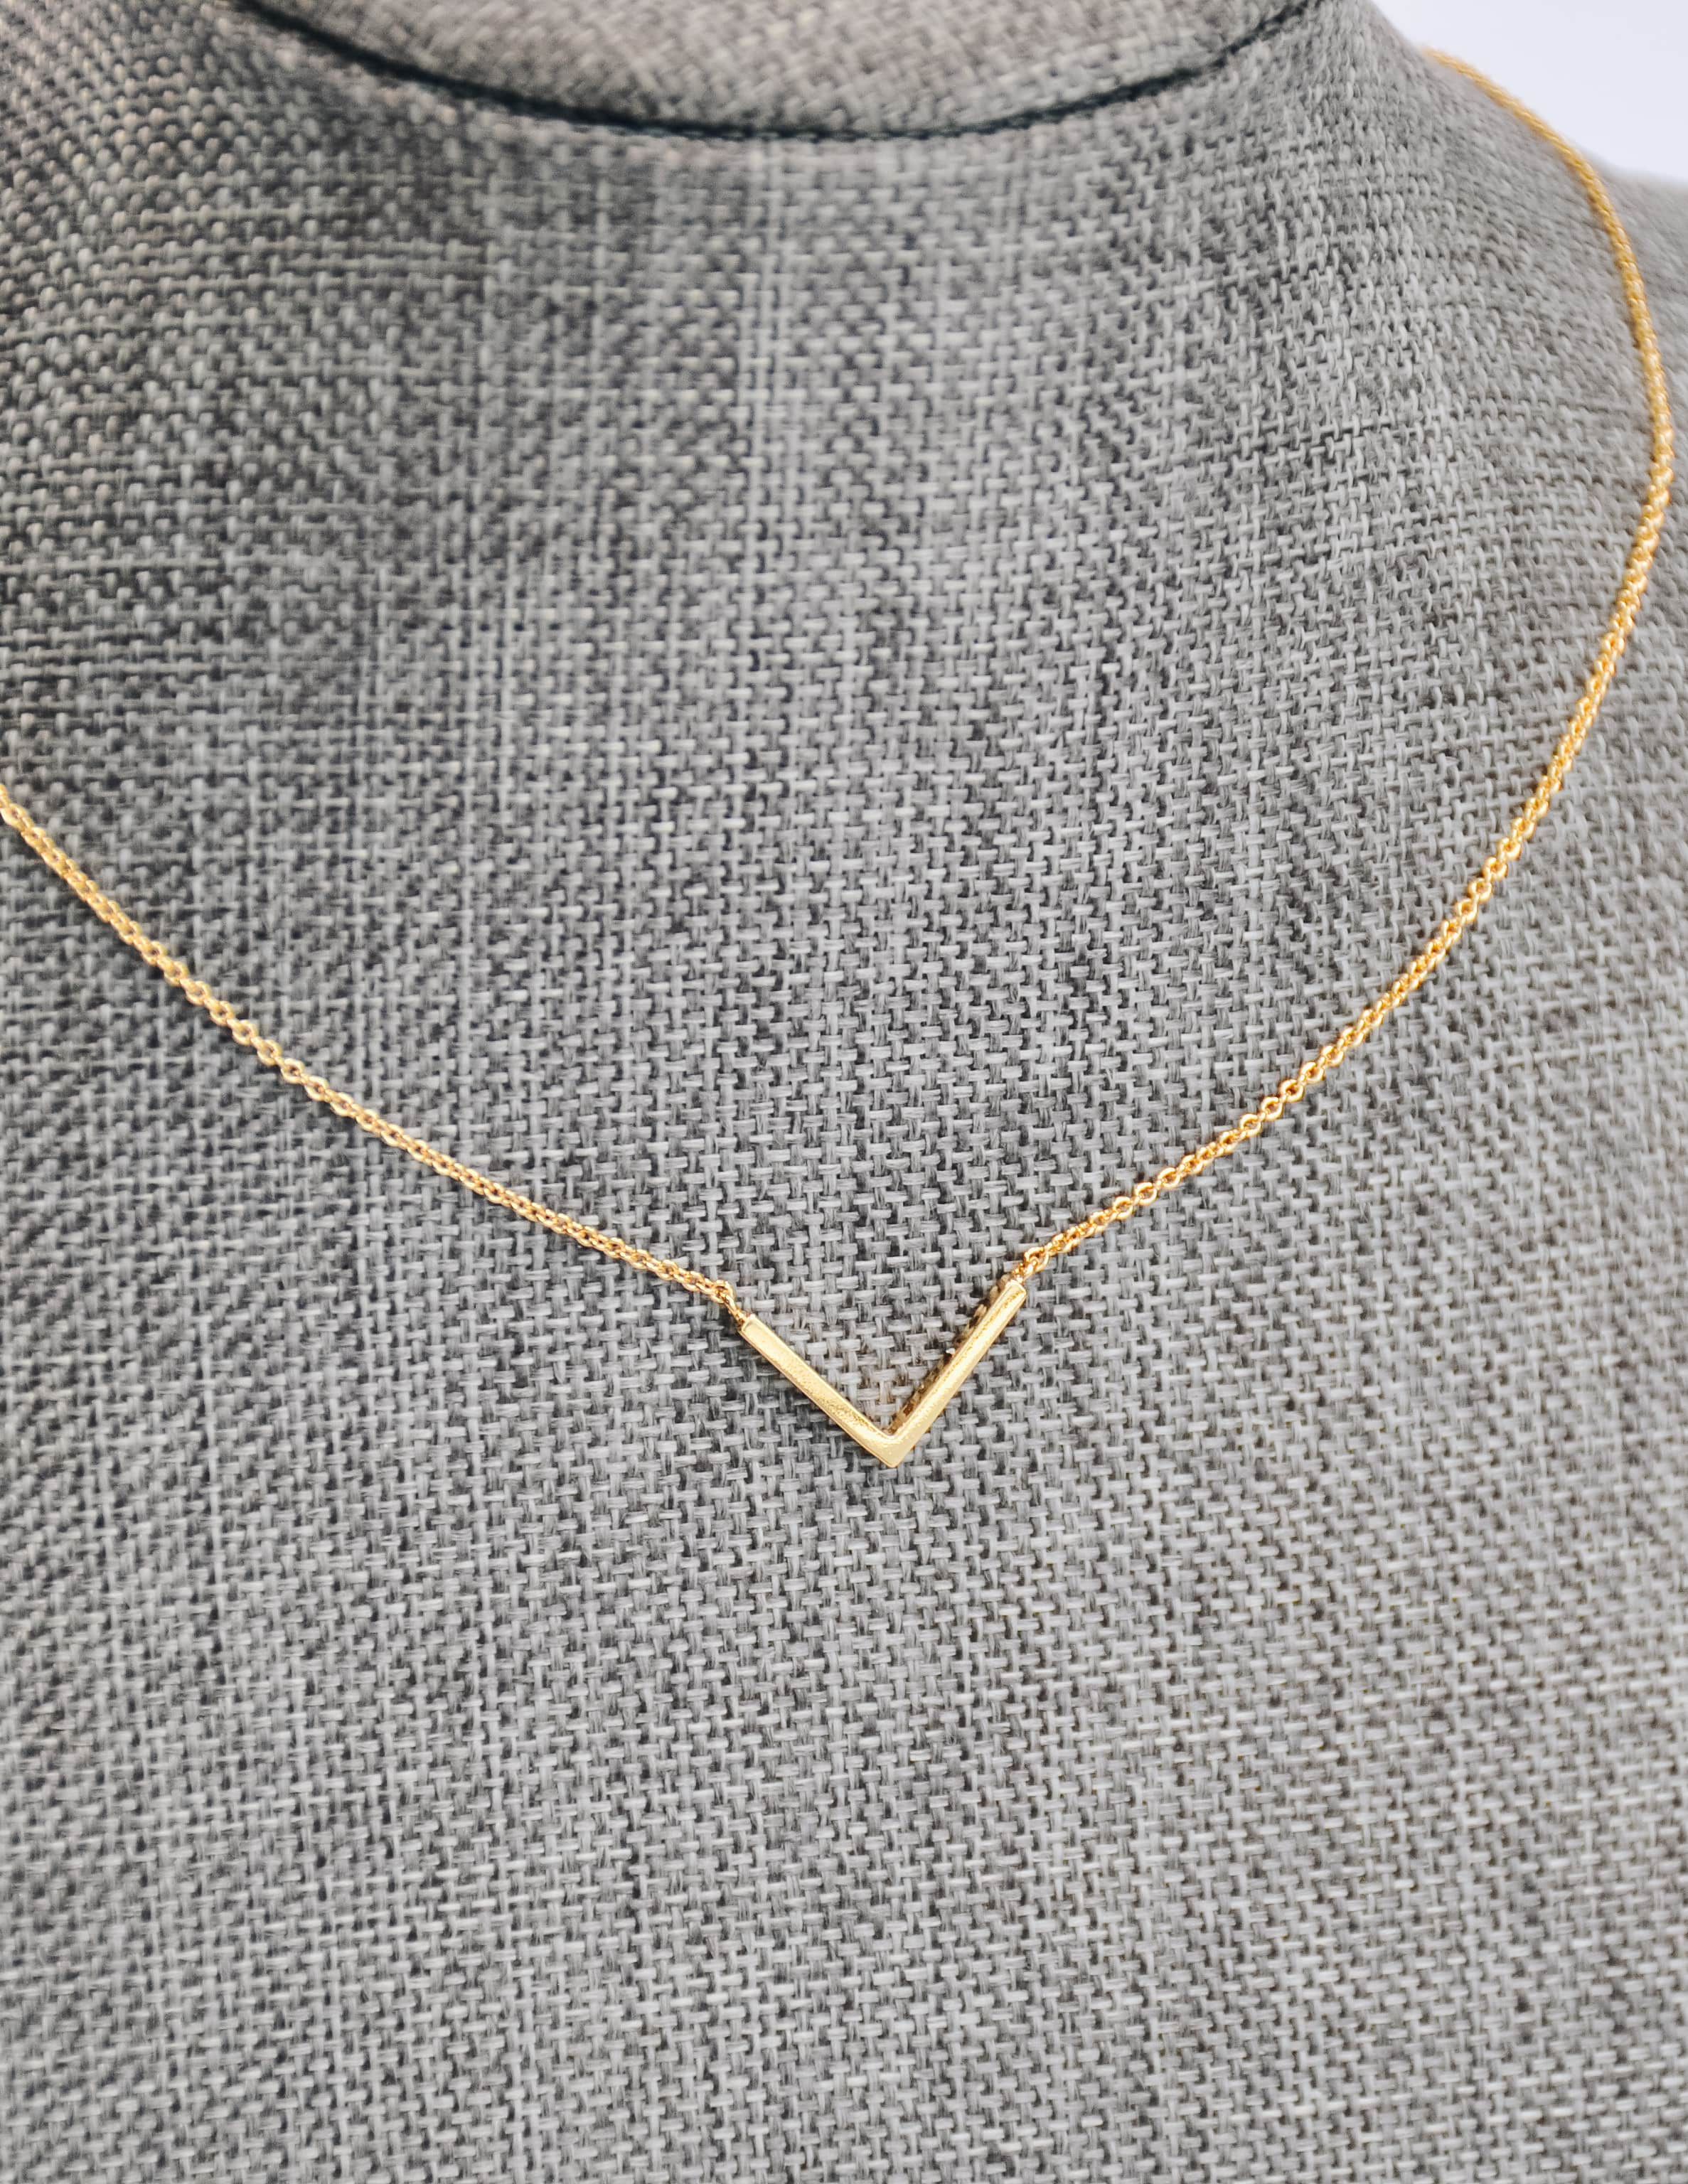 Gold chevron necklace with thin chain - elle bleu